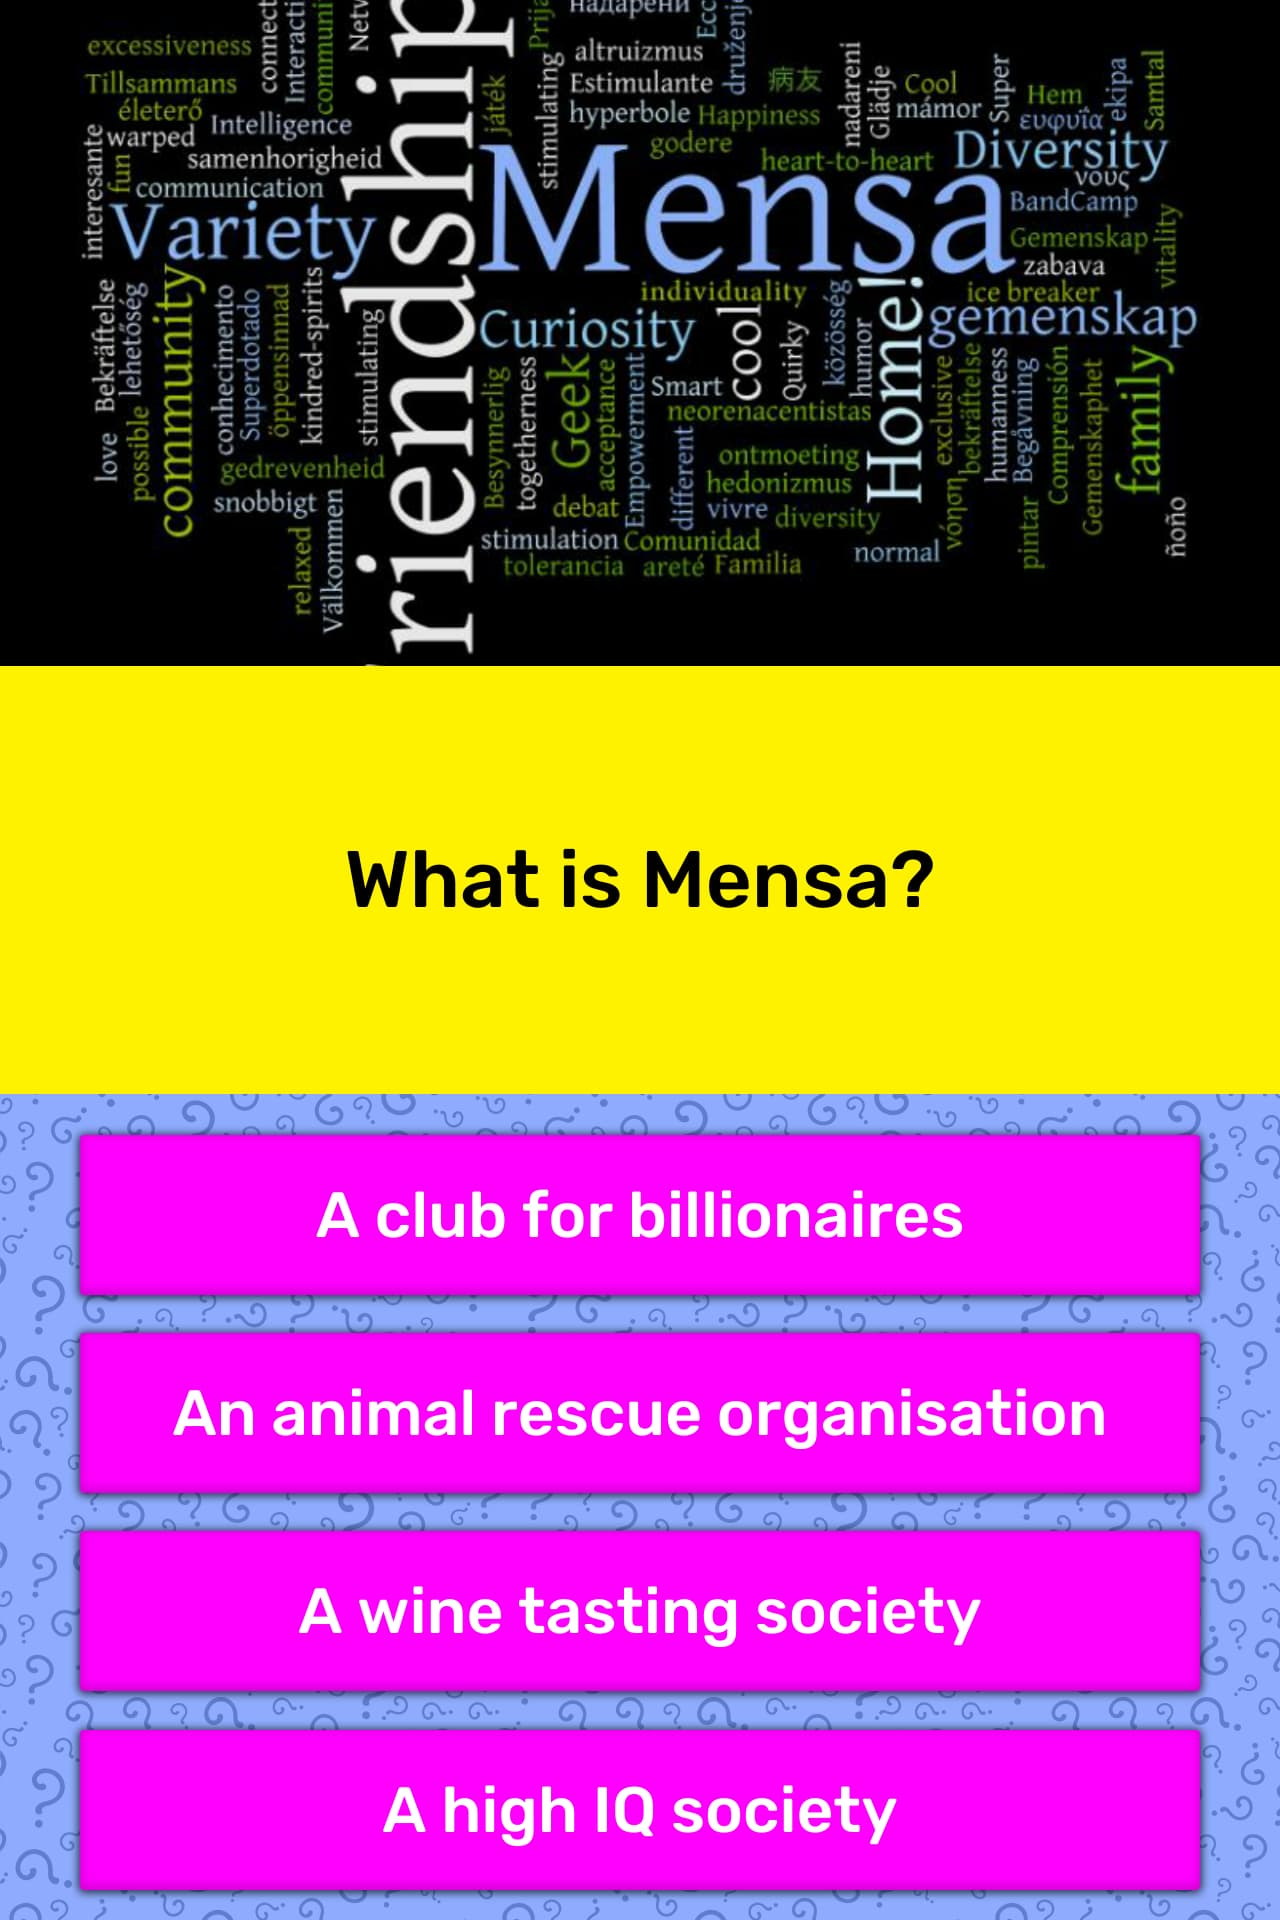 What is Mensa? | Trivia Questions | QuizzClub